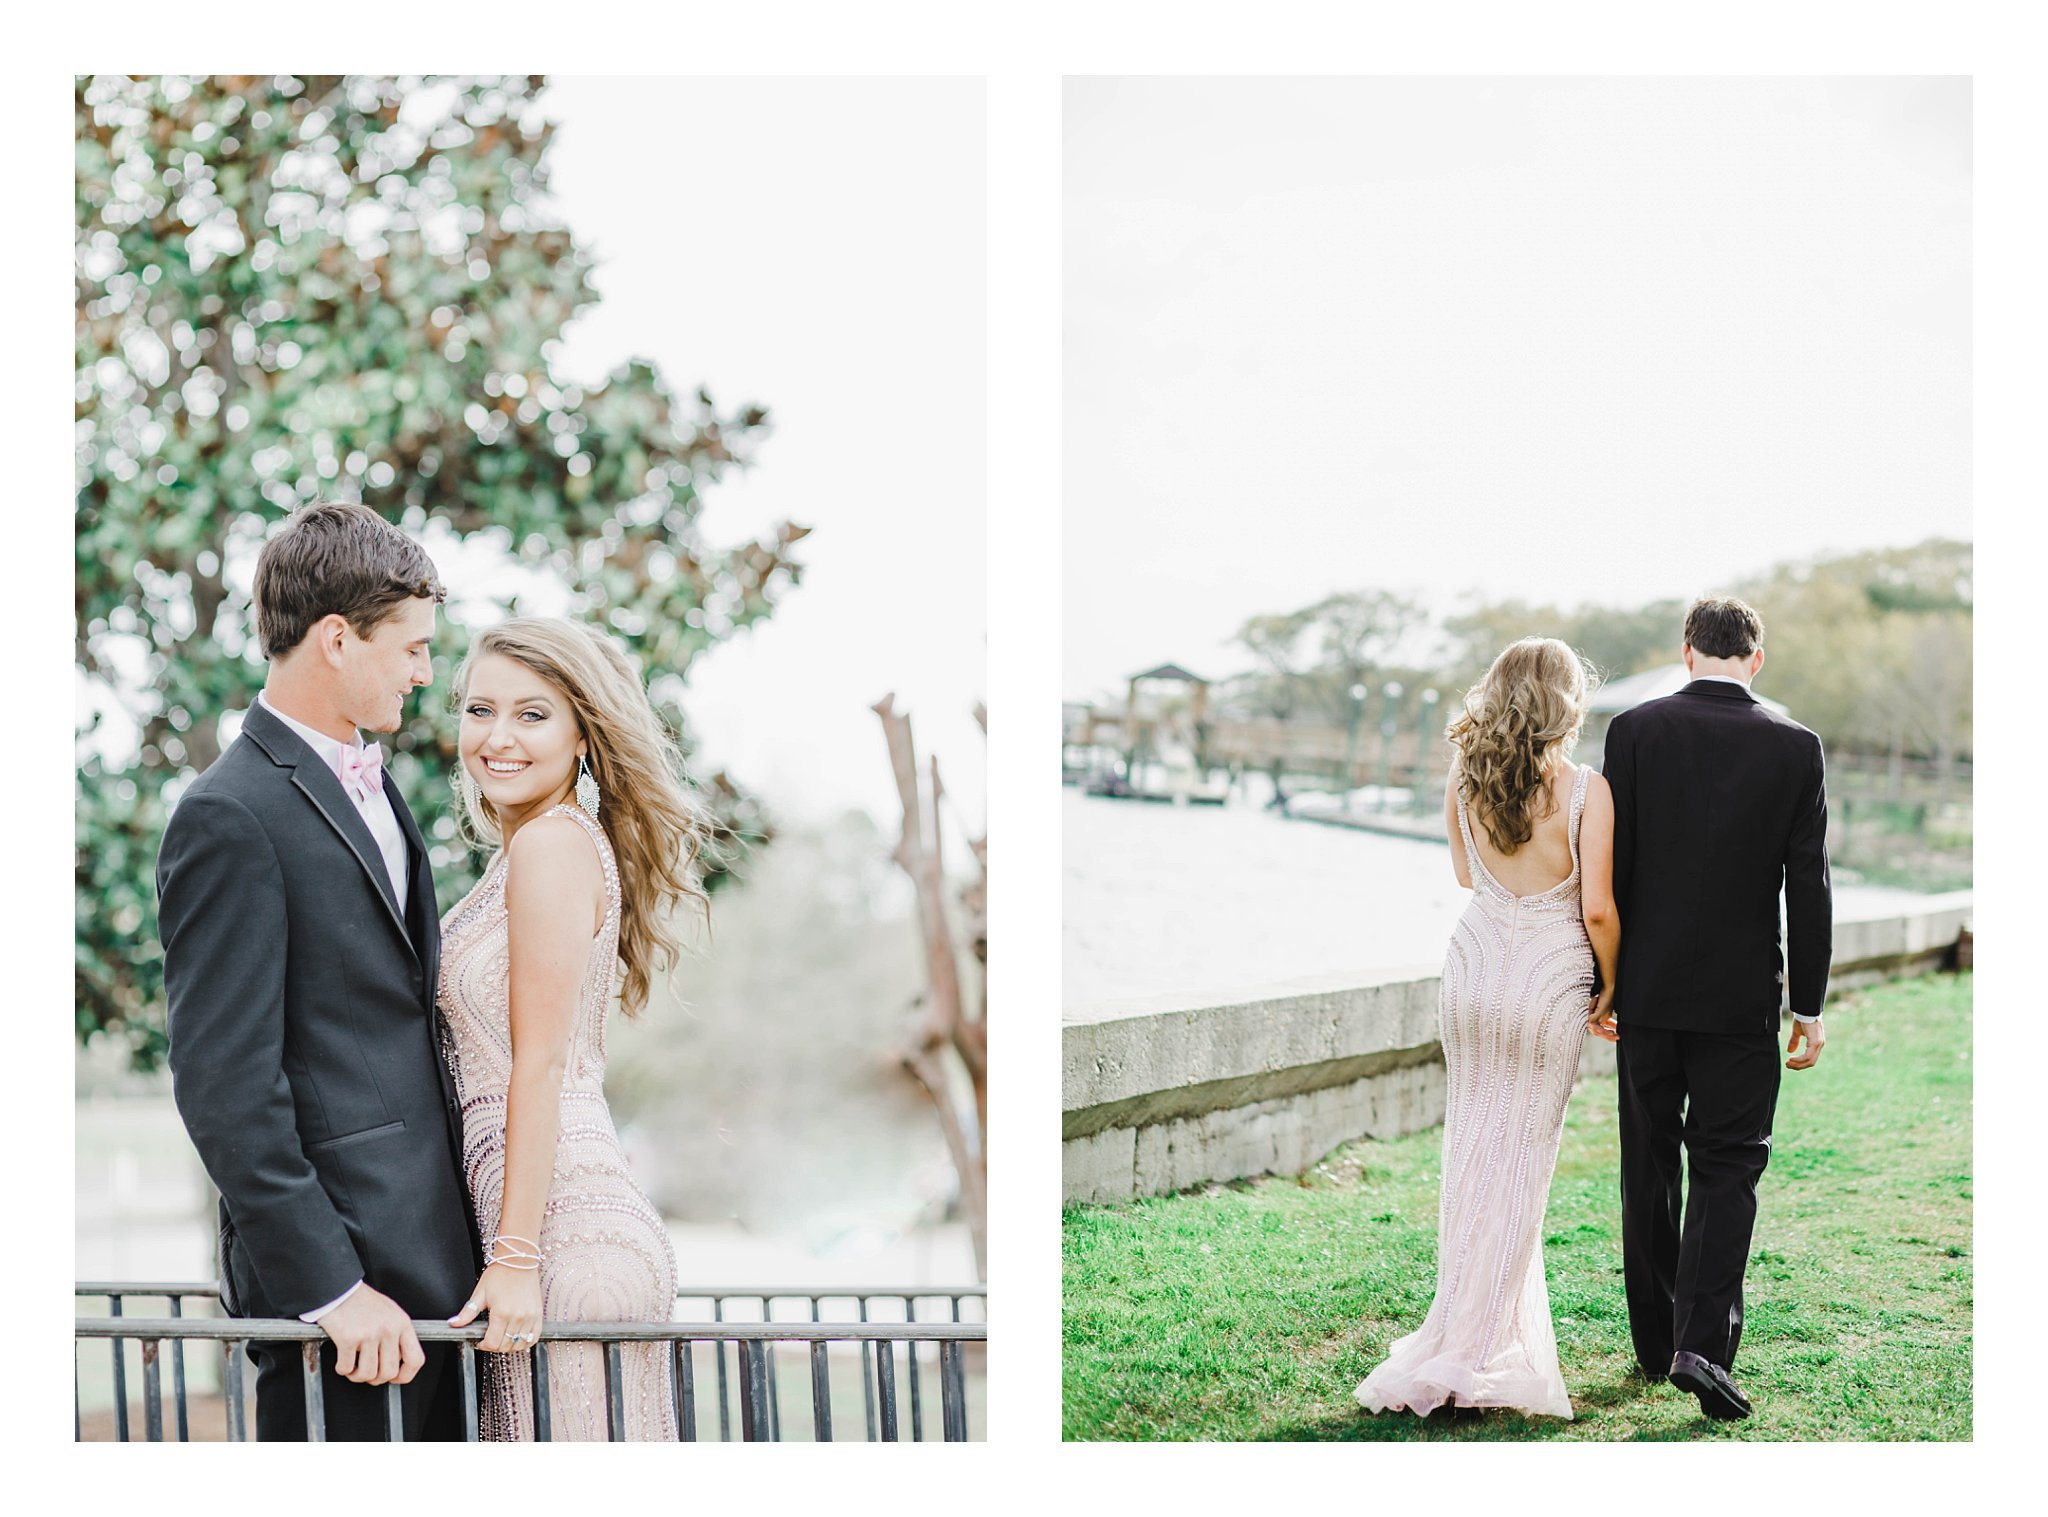 spring-belin-methodist-beaded-gown-murrells-inlet-sc-prom-photos-_0015.jpg